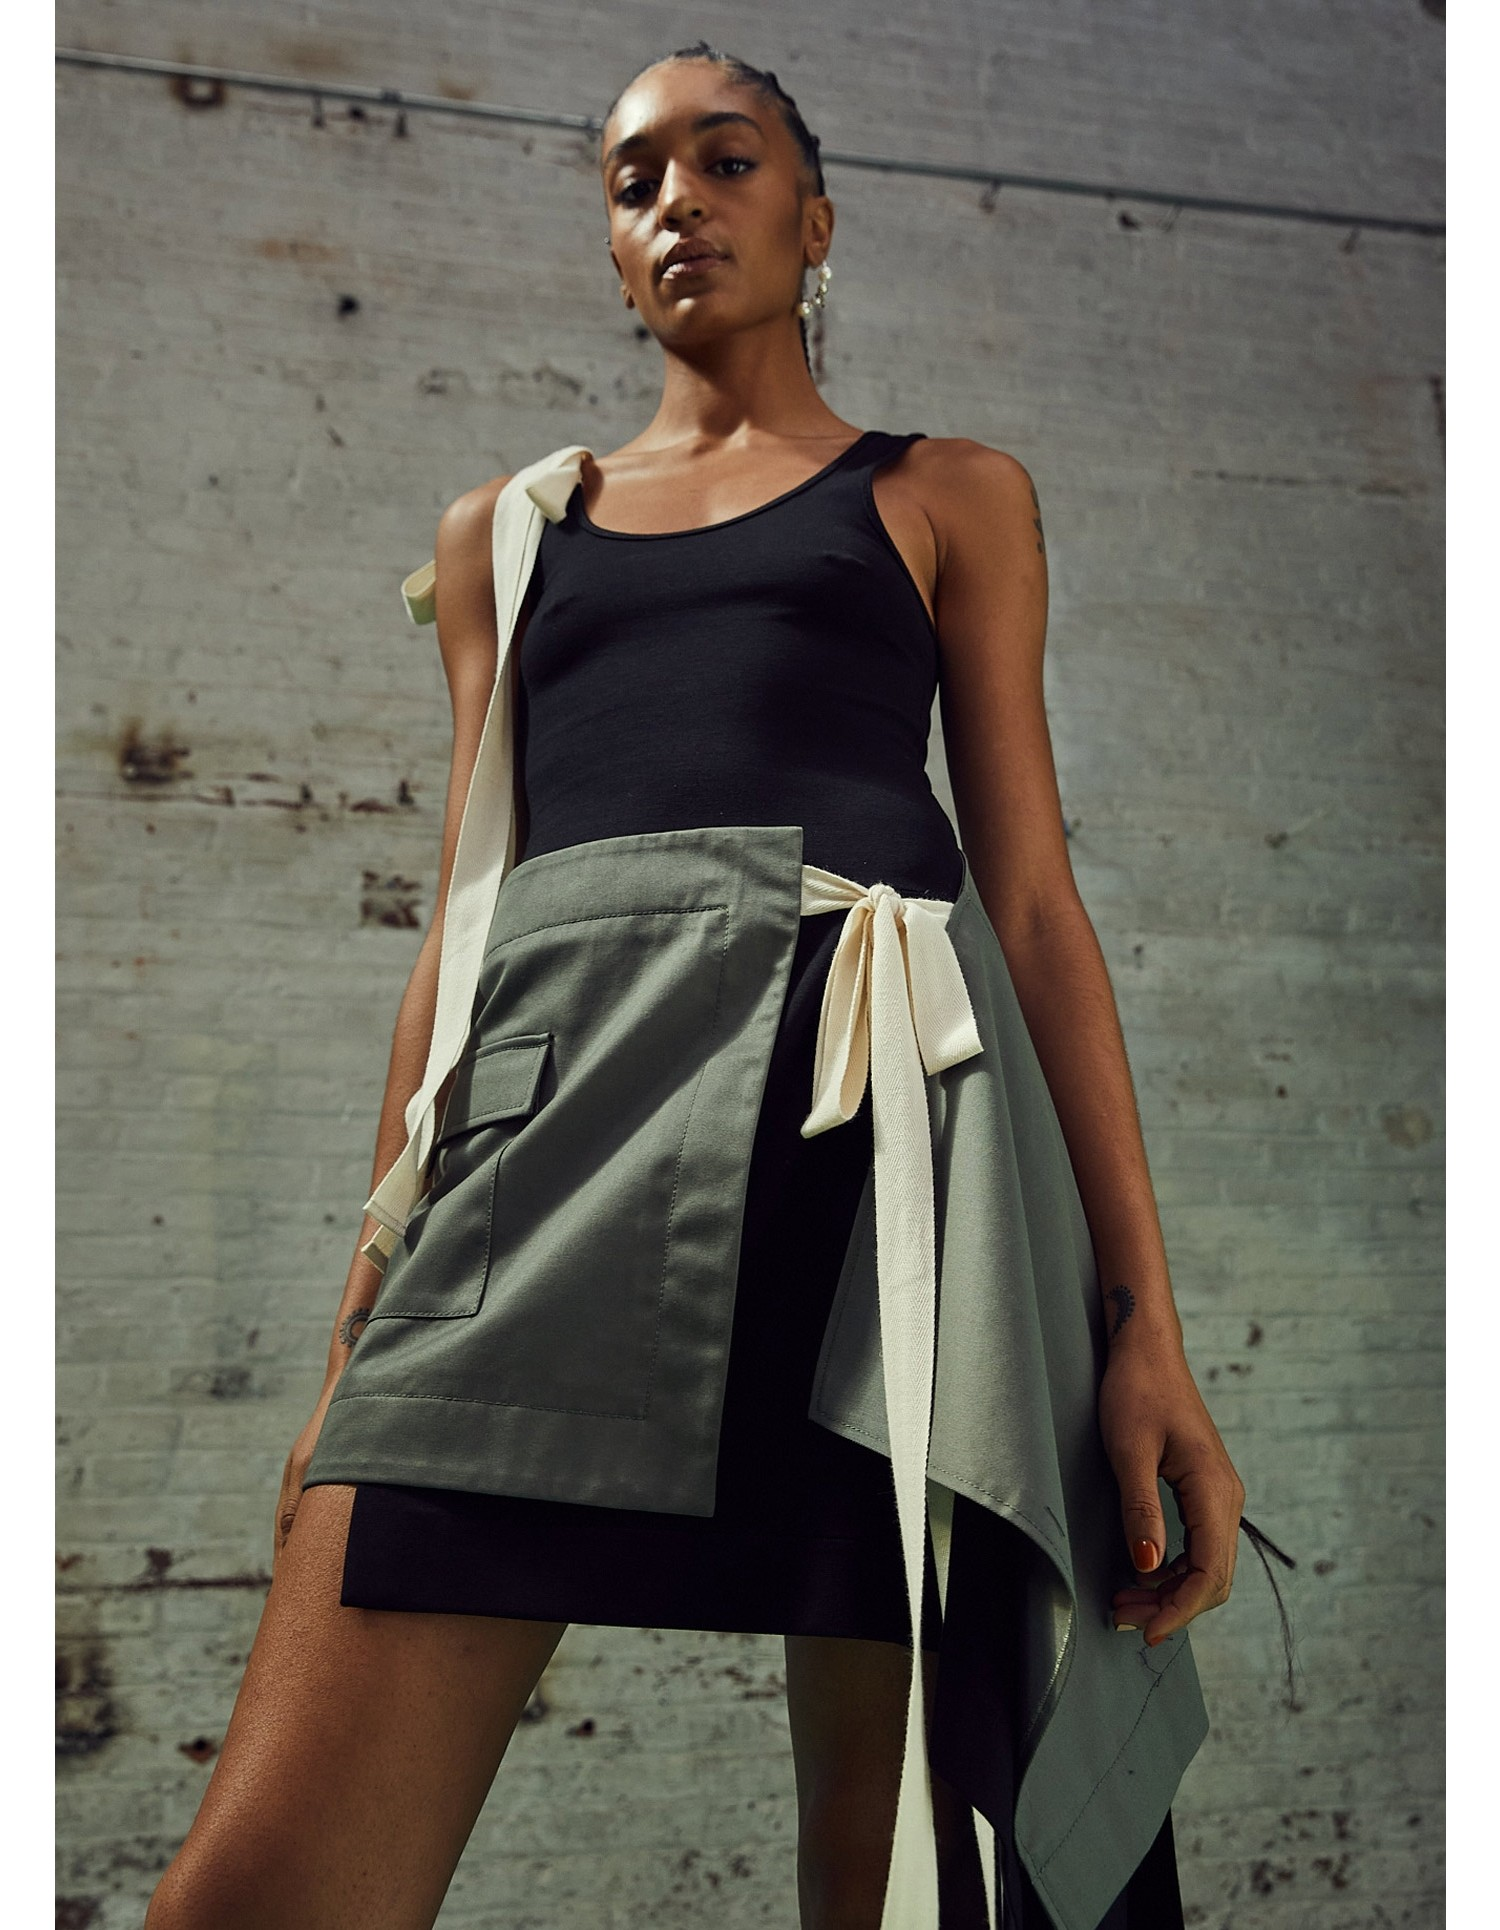 MONSE T-Skirt Dress in Black and Olive on Model Front View